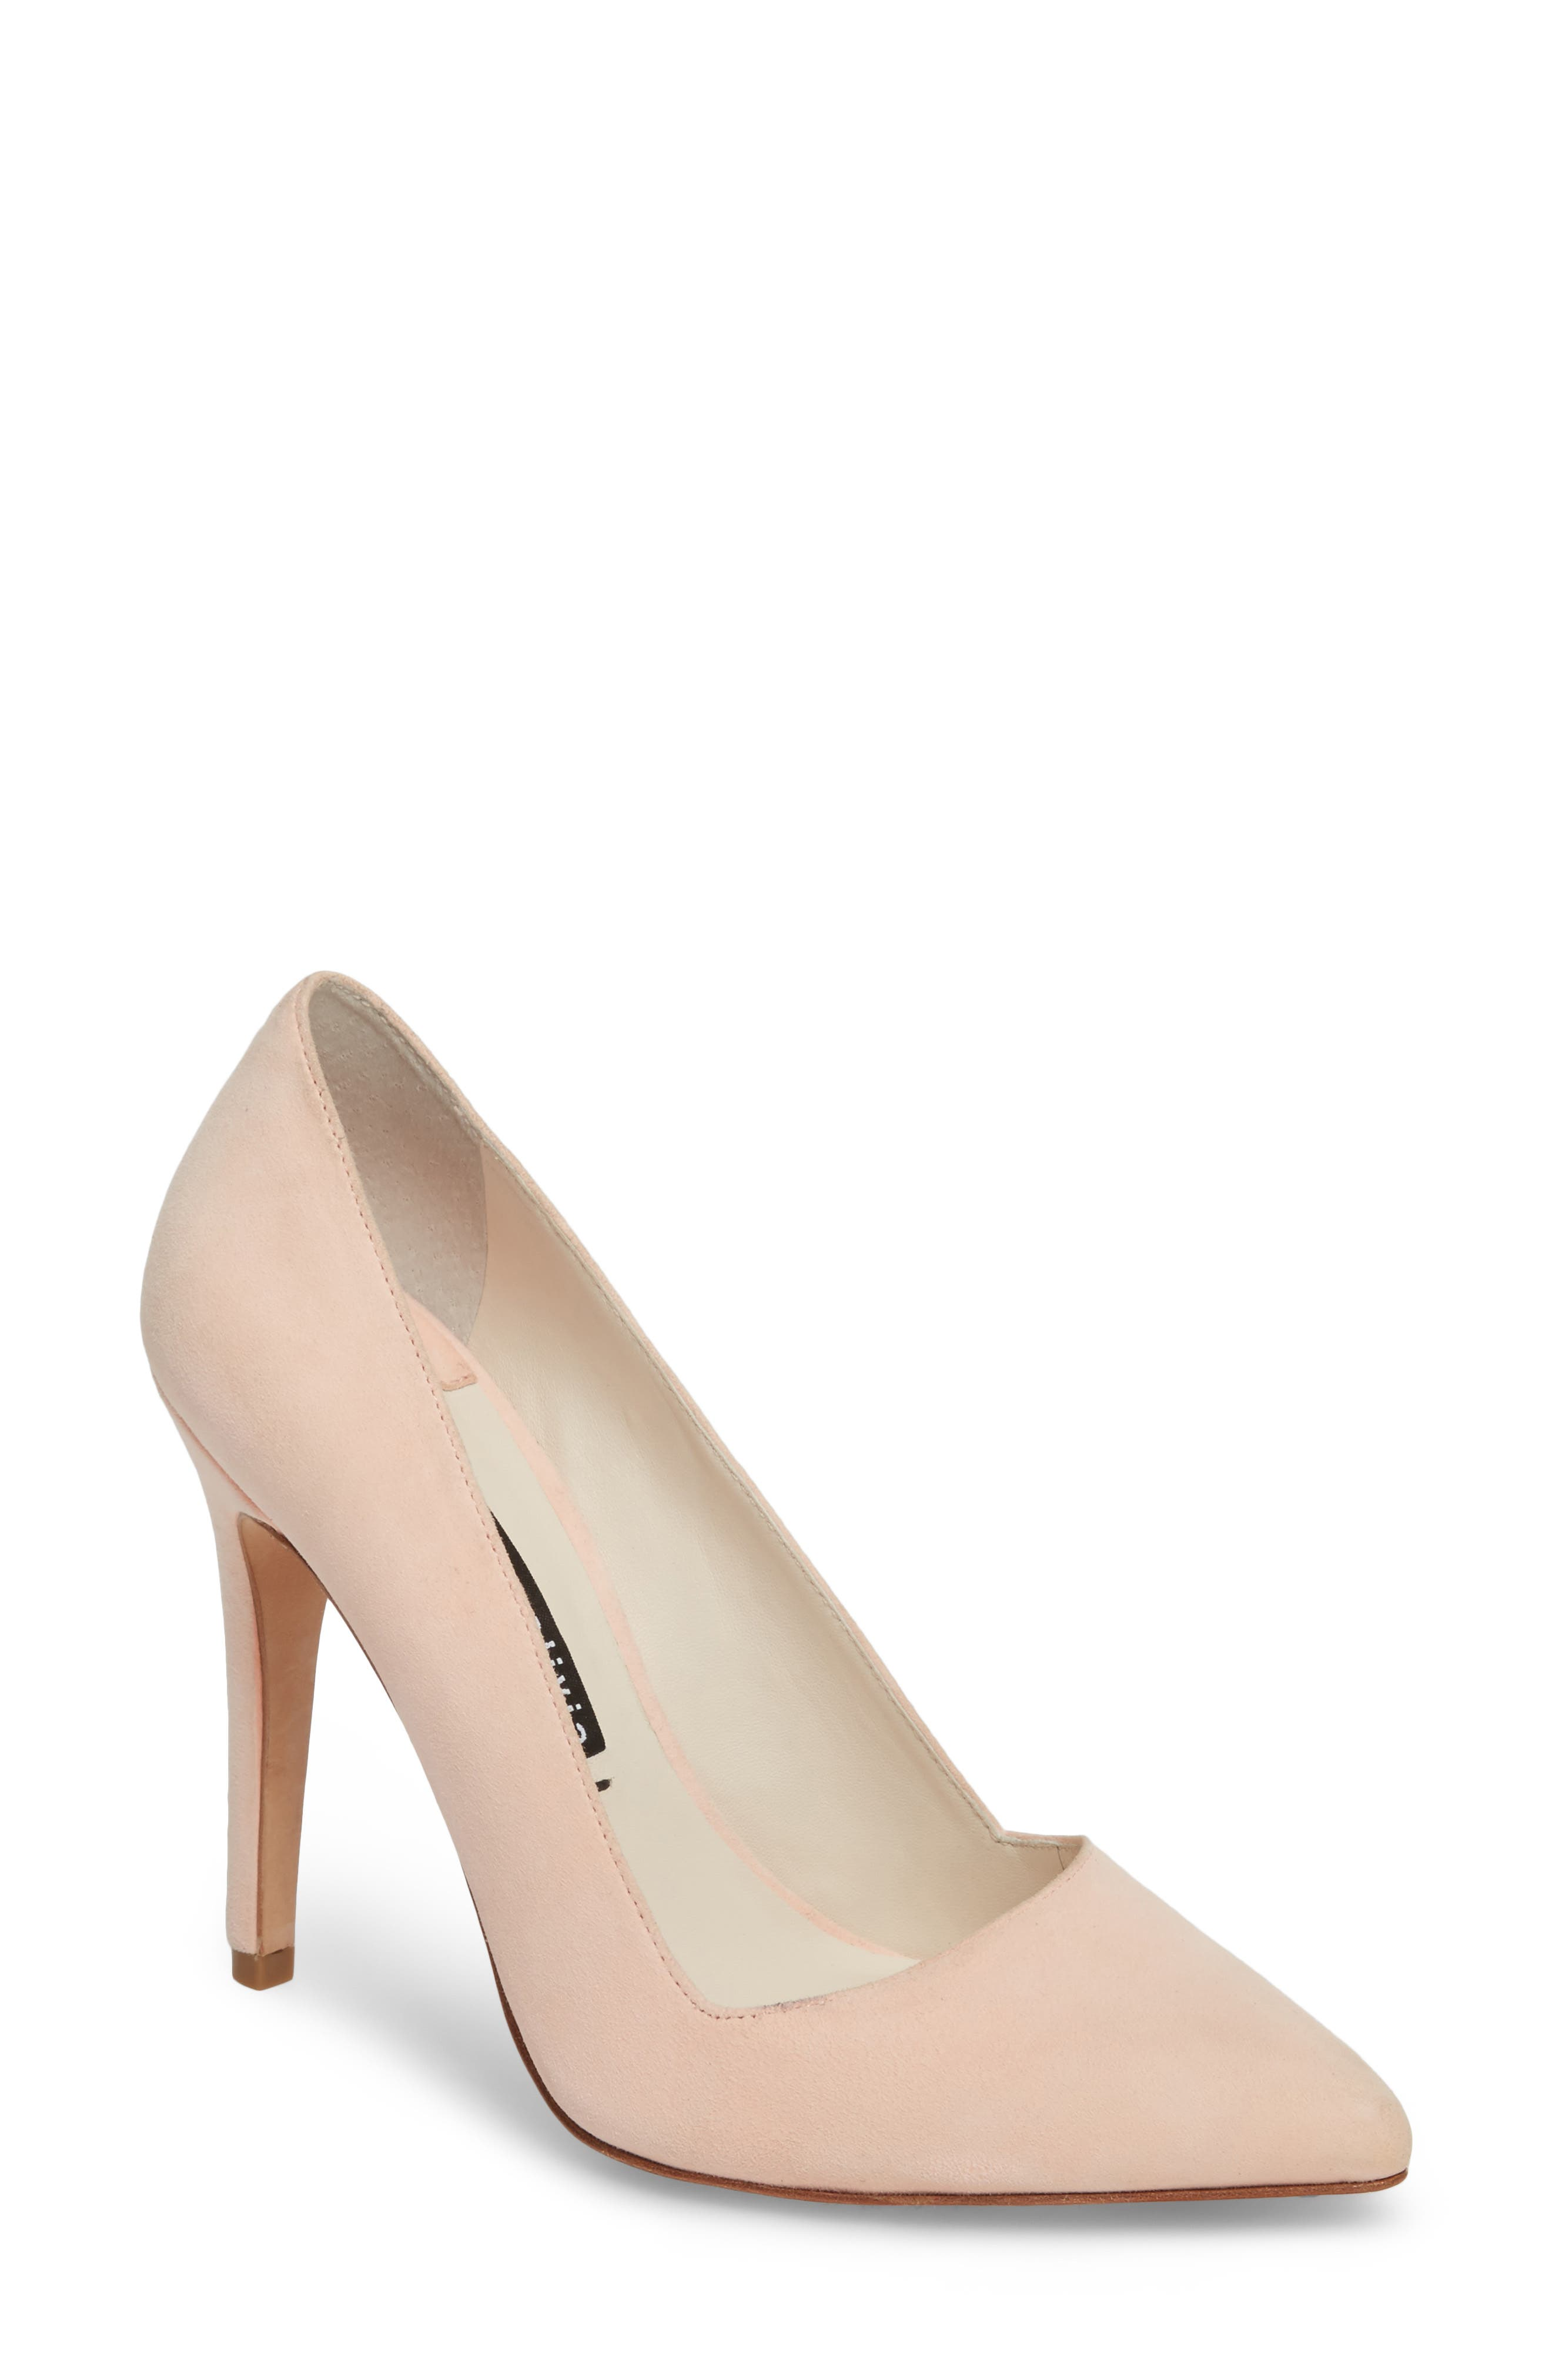 Dina 95 Whipstitch Pointy Toe Pump,                             Main thumbnail 1, color,                             Perfect Pink Suede